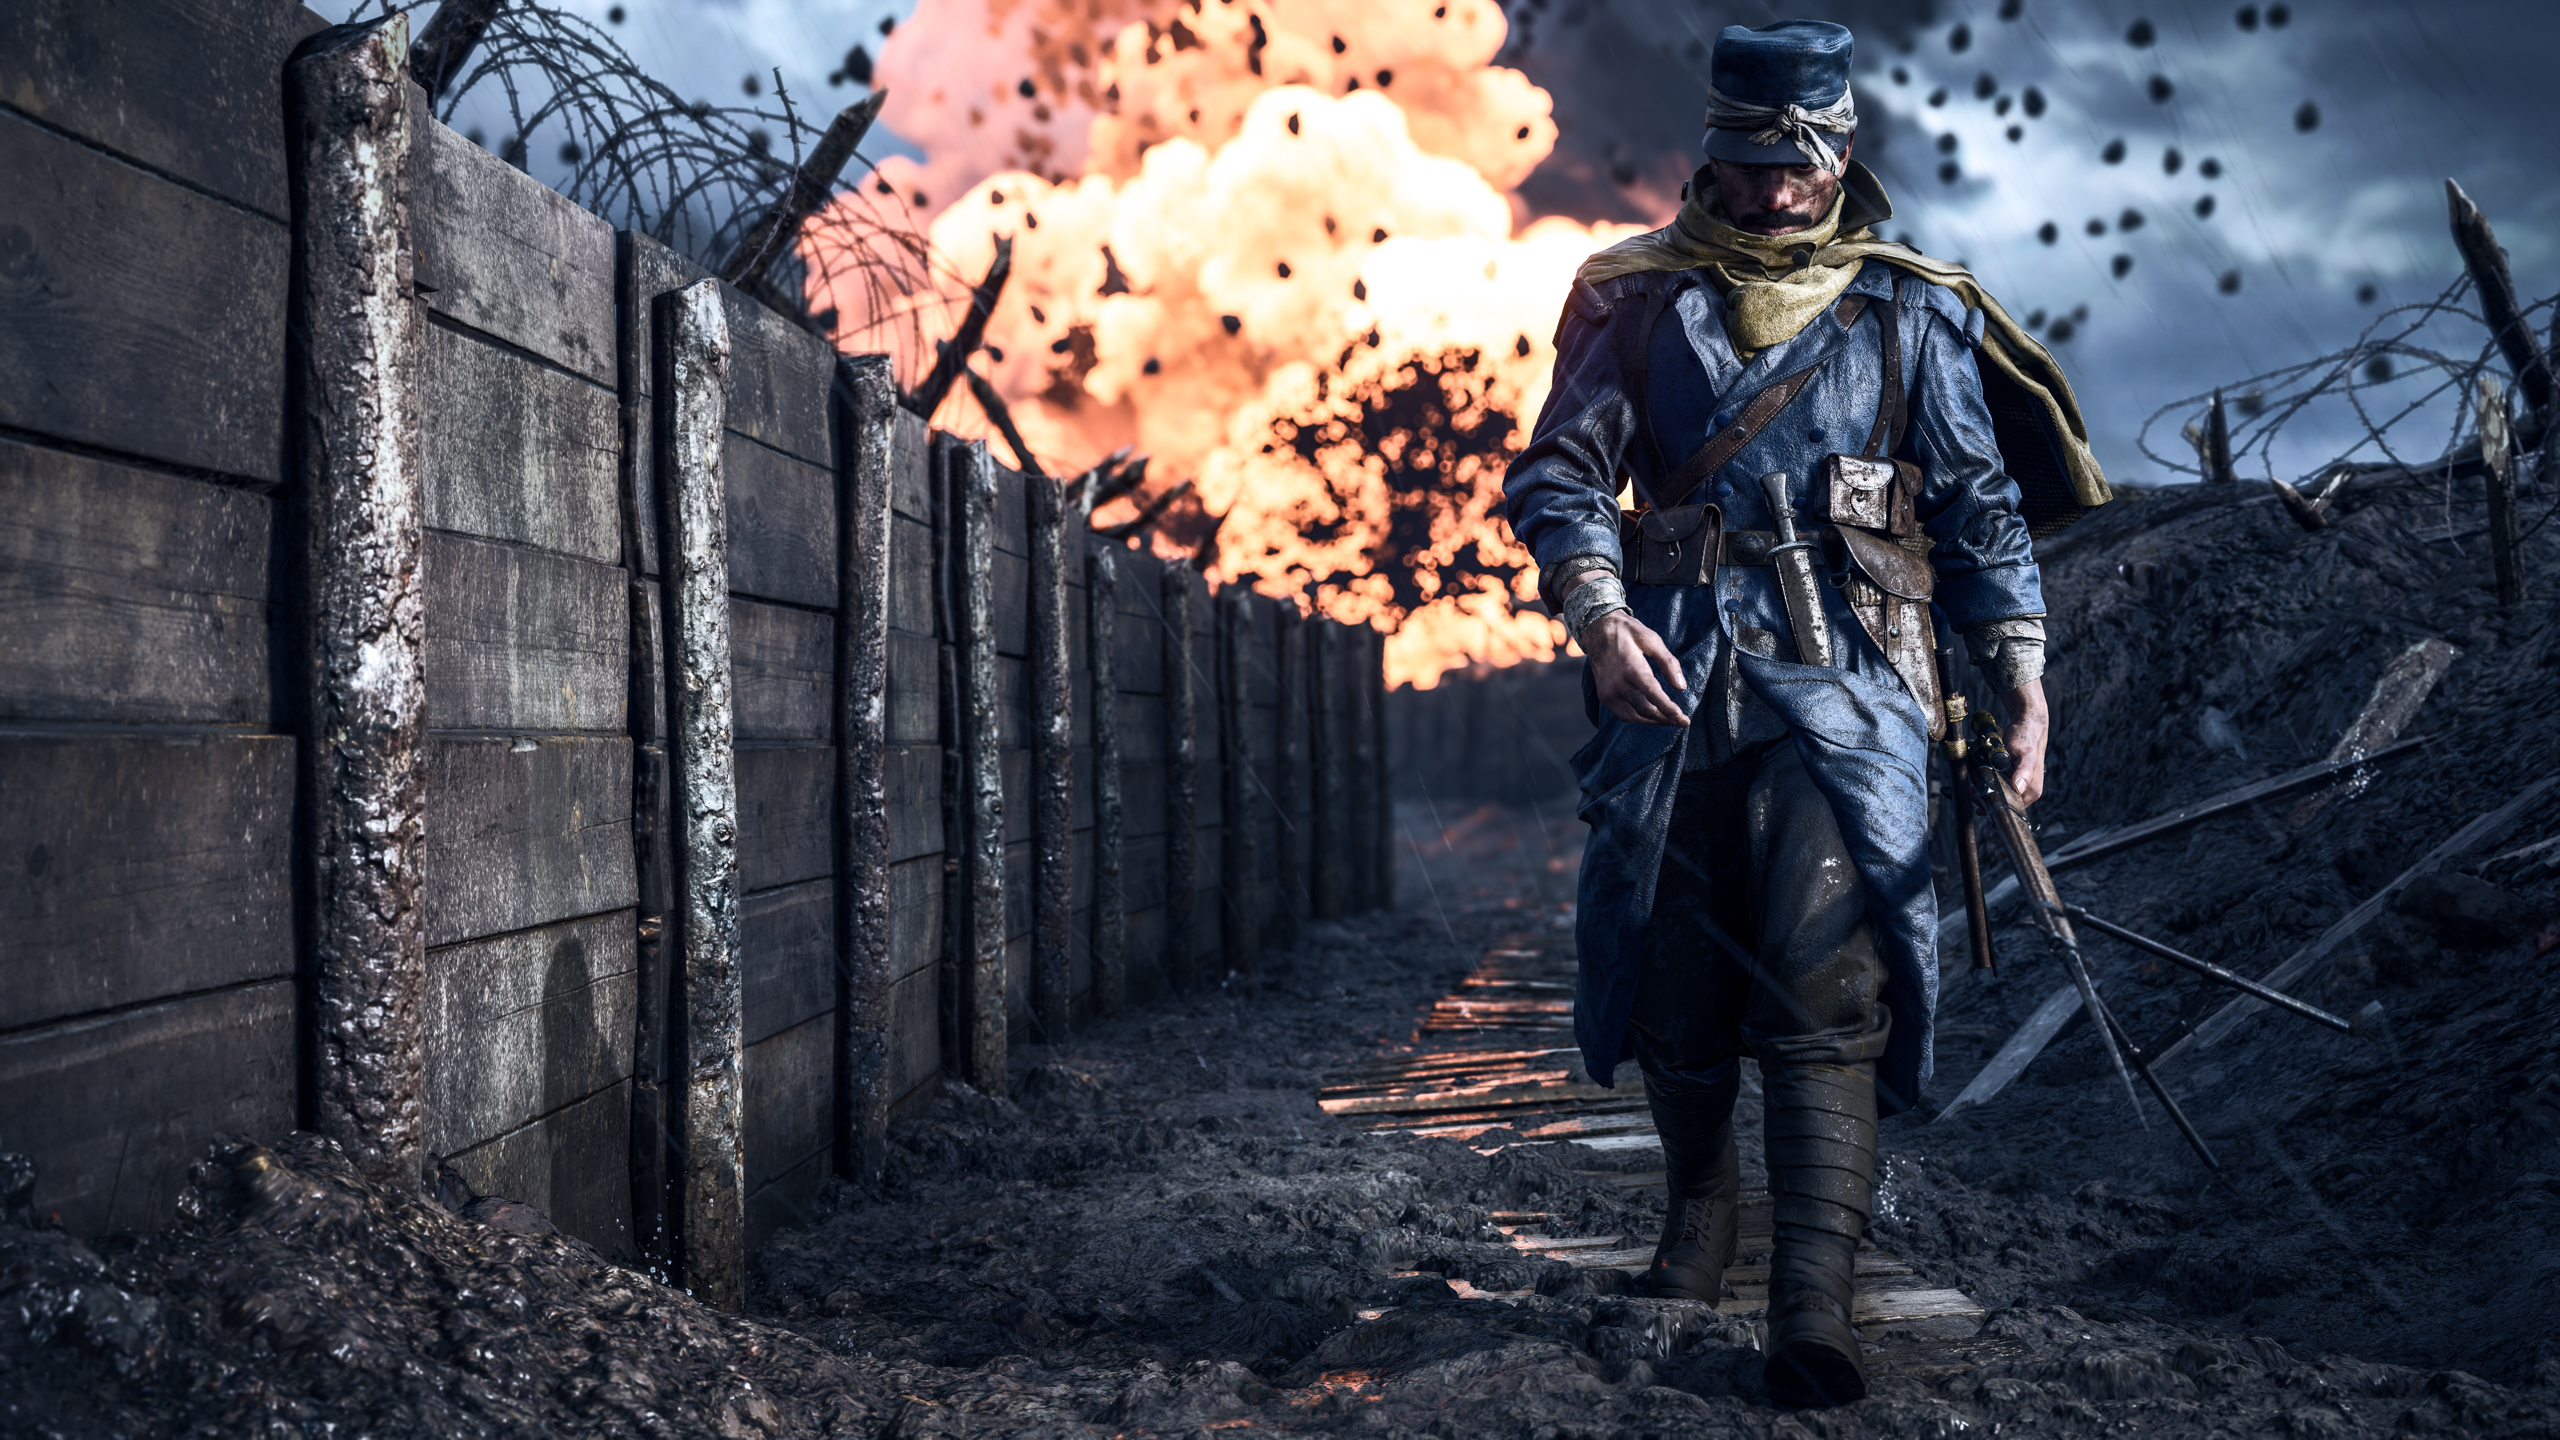 Battlefield 1 Soldier, HD Games, 4k Wallpapers, Images ...